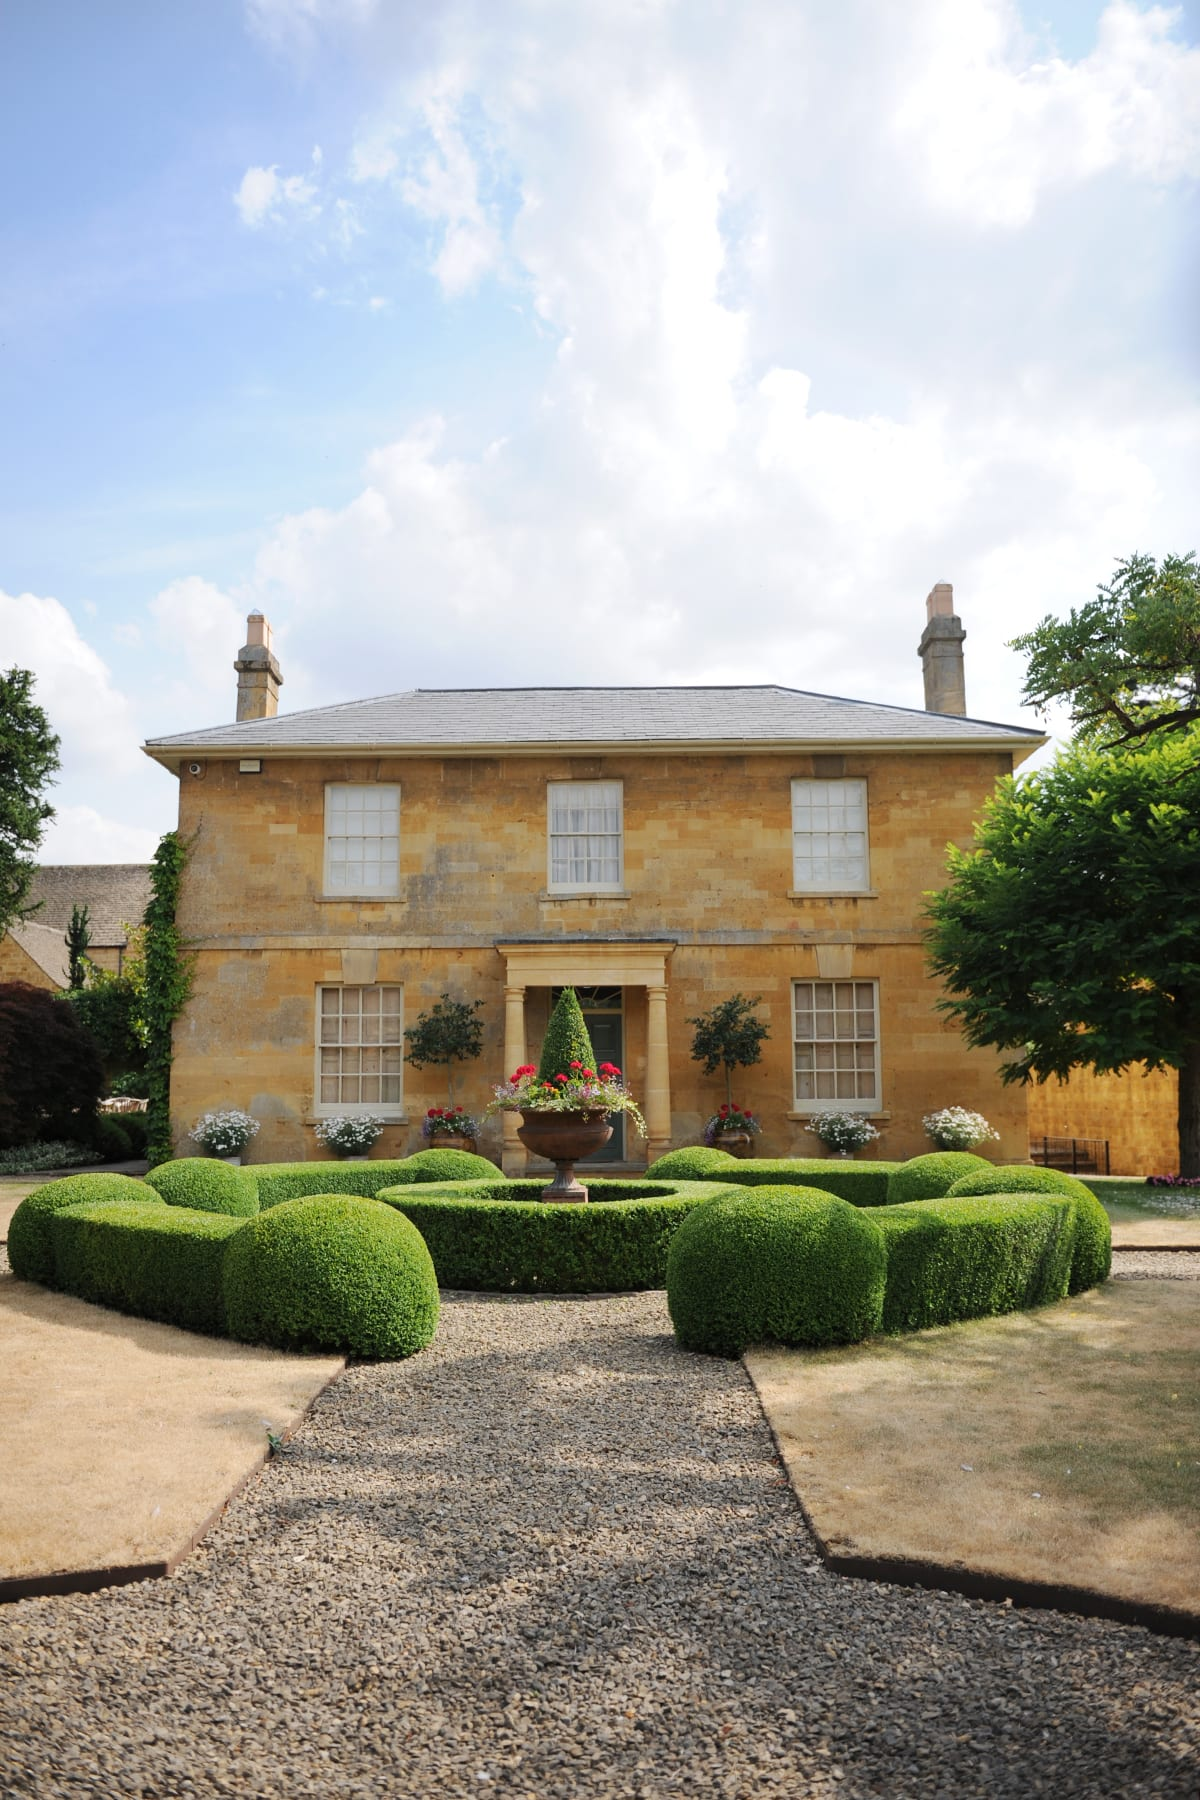 Cotswold Villages Day trip from London